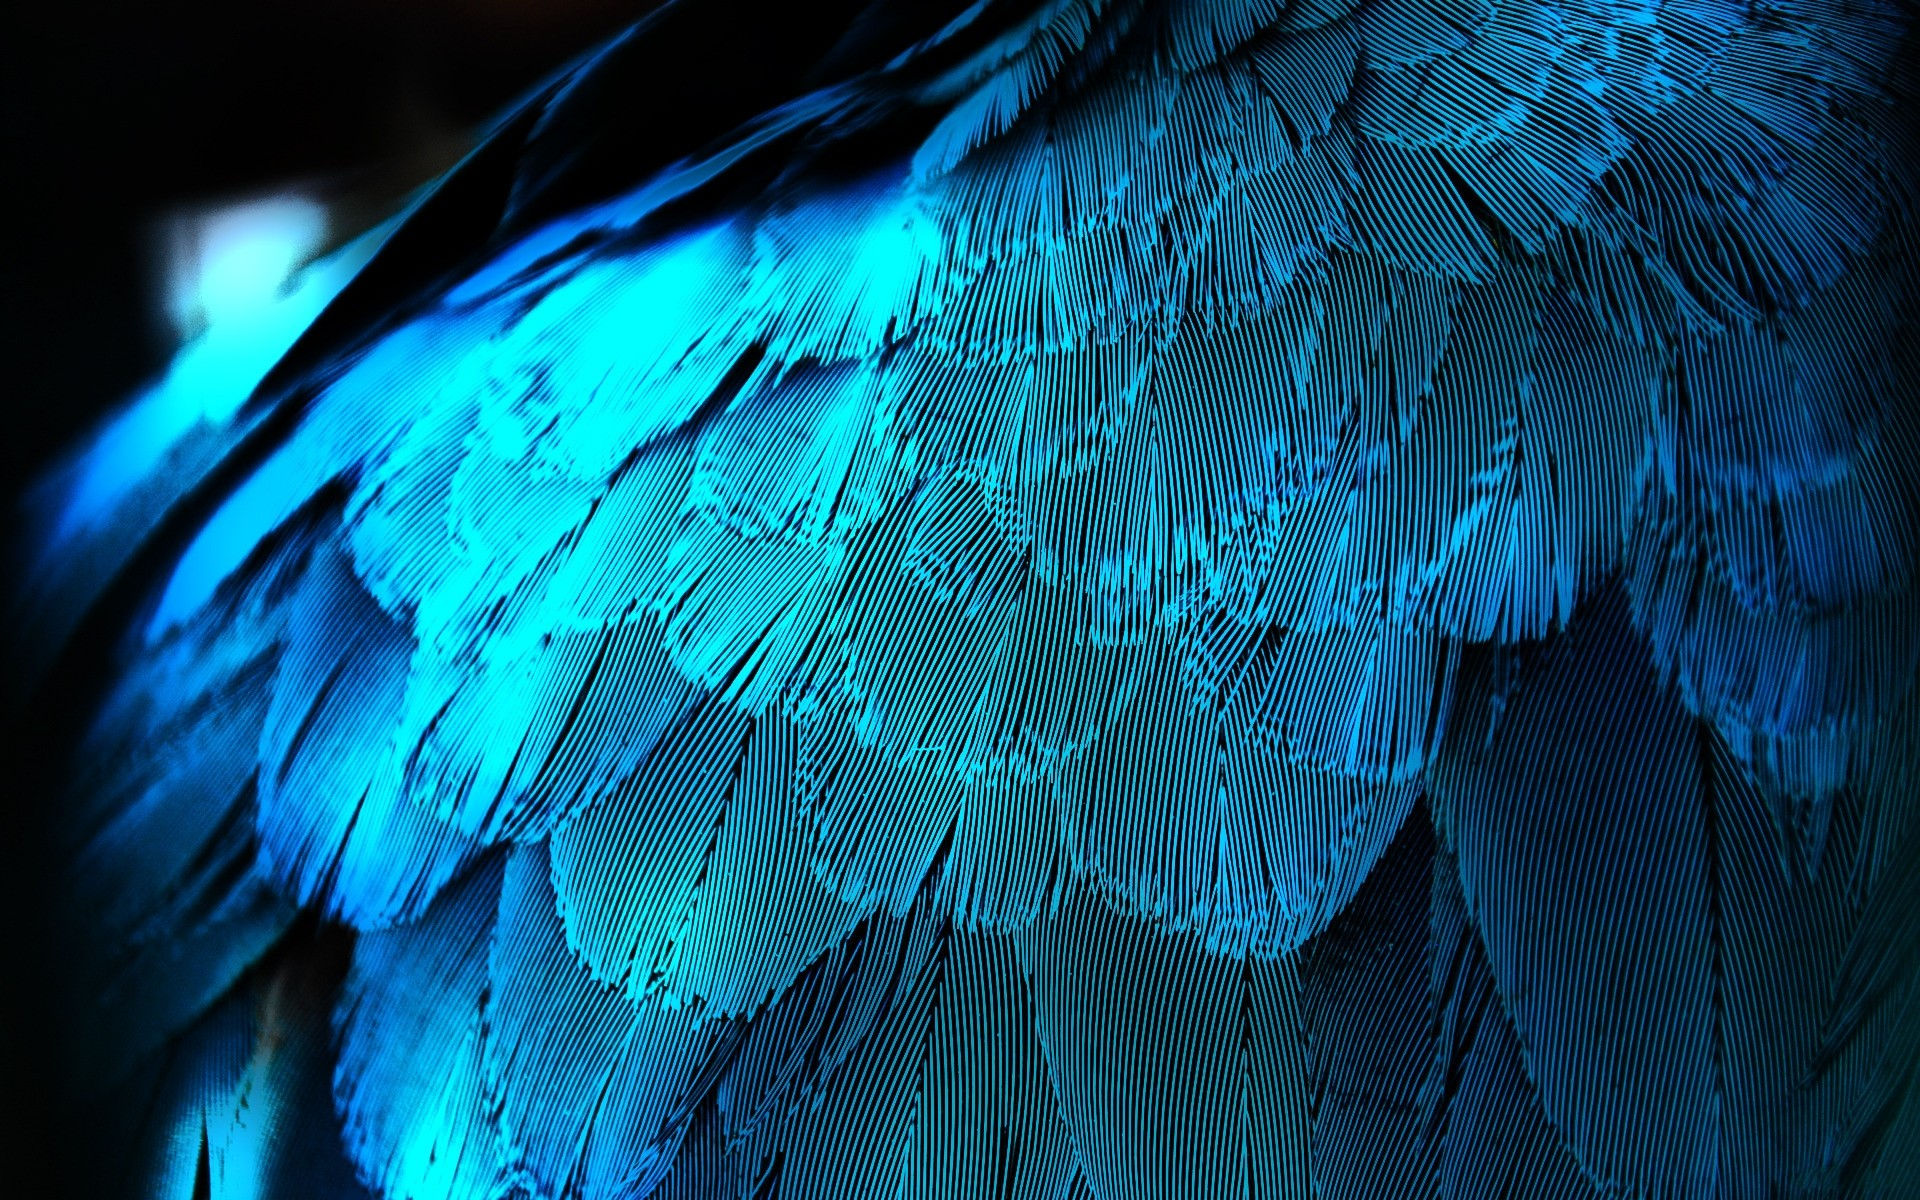 Download Desktop Wallpaper Peacock Feathers With Blue Light